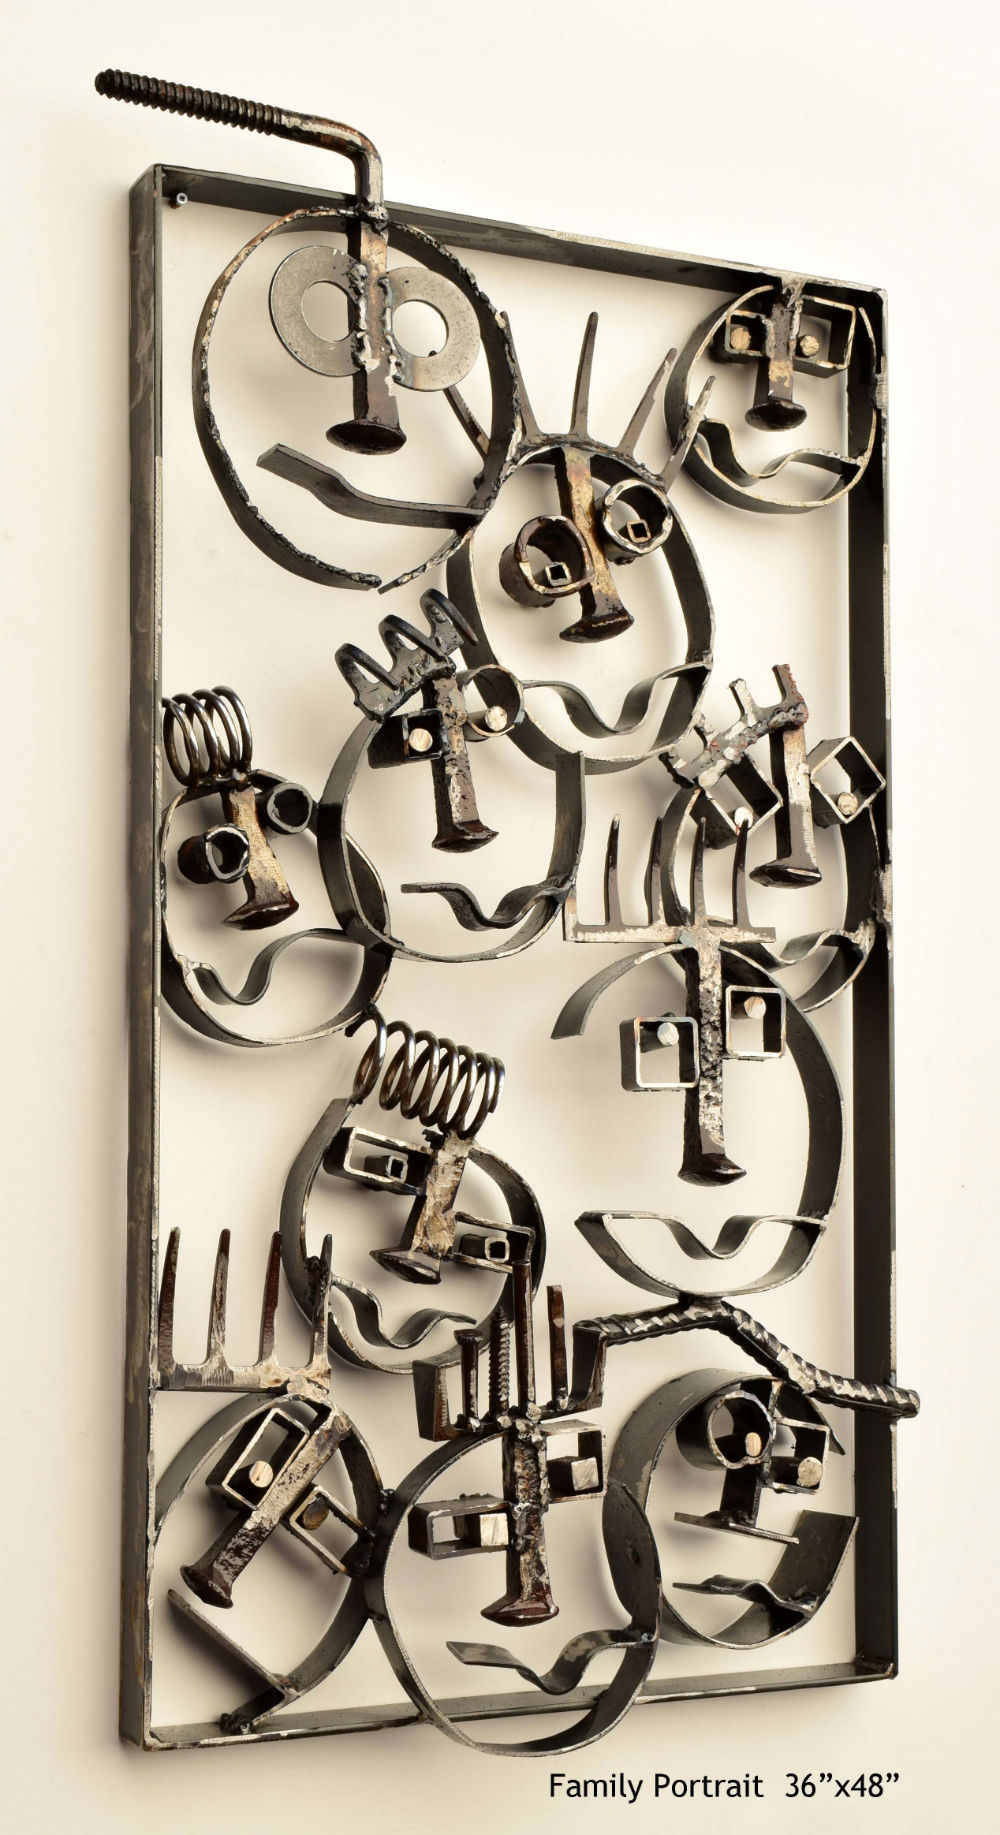 Walden5_opt.jpg